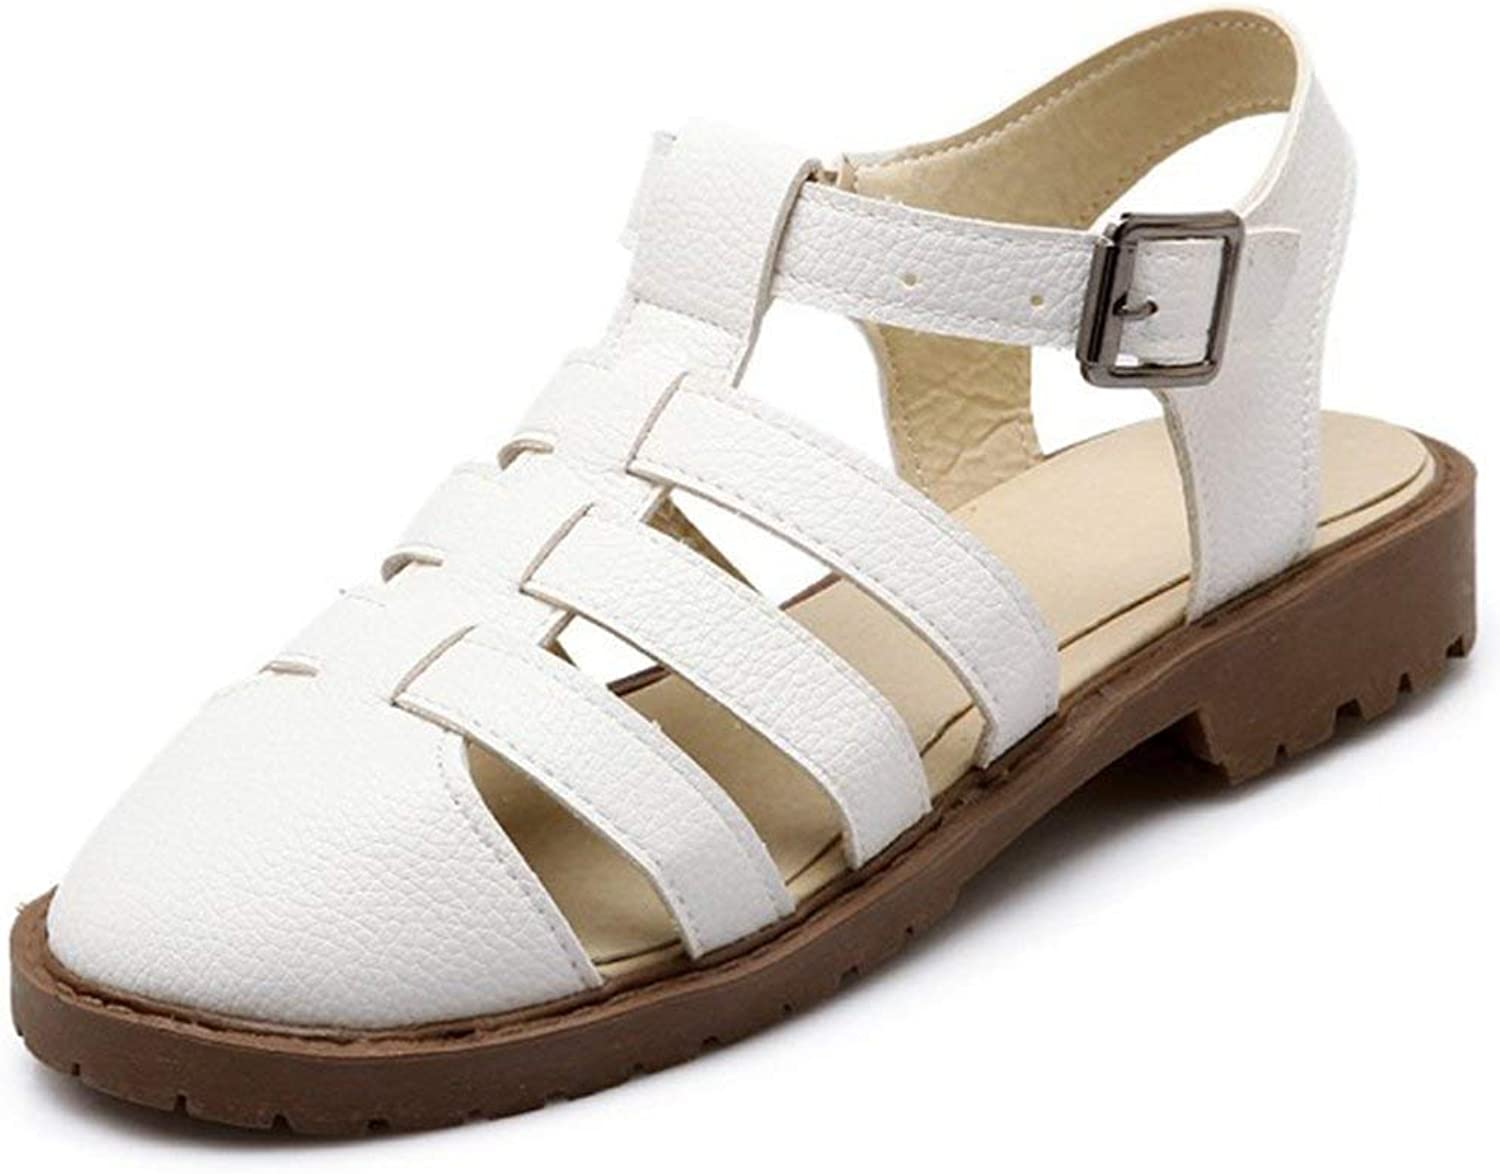 Wallhewb Women's Trendy Buckle T-Strap Cut Out Round Closed Toe Low Heel Gladiator Sandals Rubber Sole Joker Breathable Antiskid Academic Style Leather Convenient Dreass White 8 M US Sandals